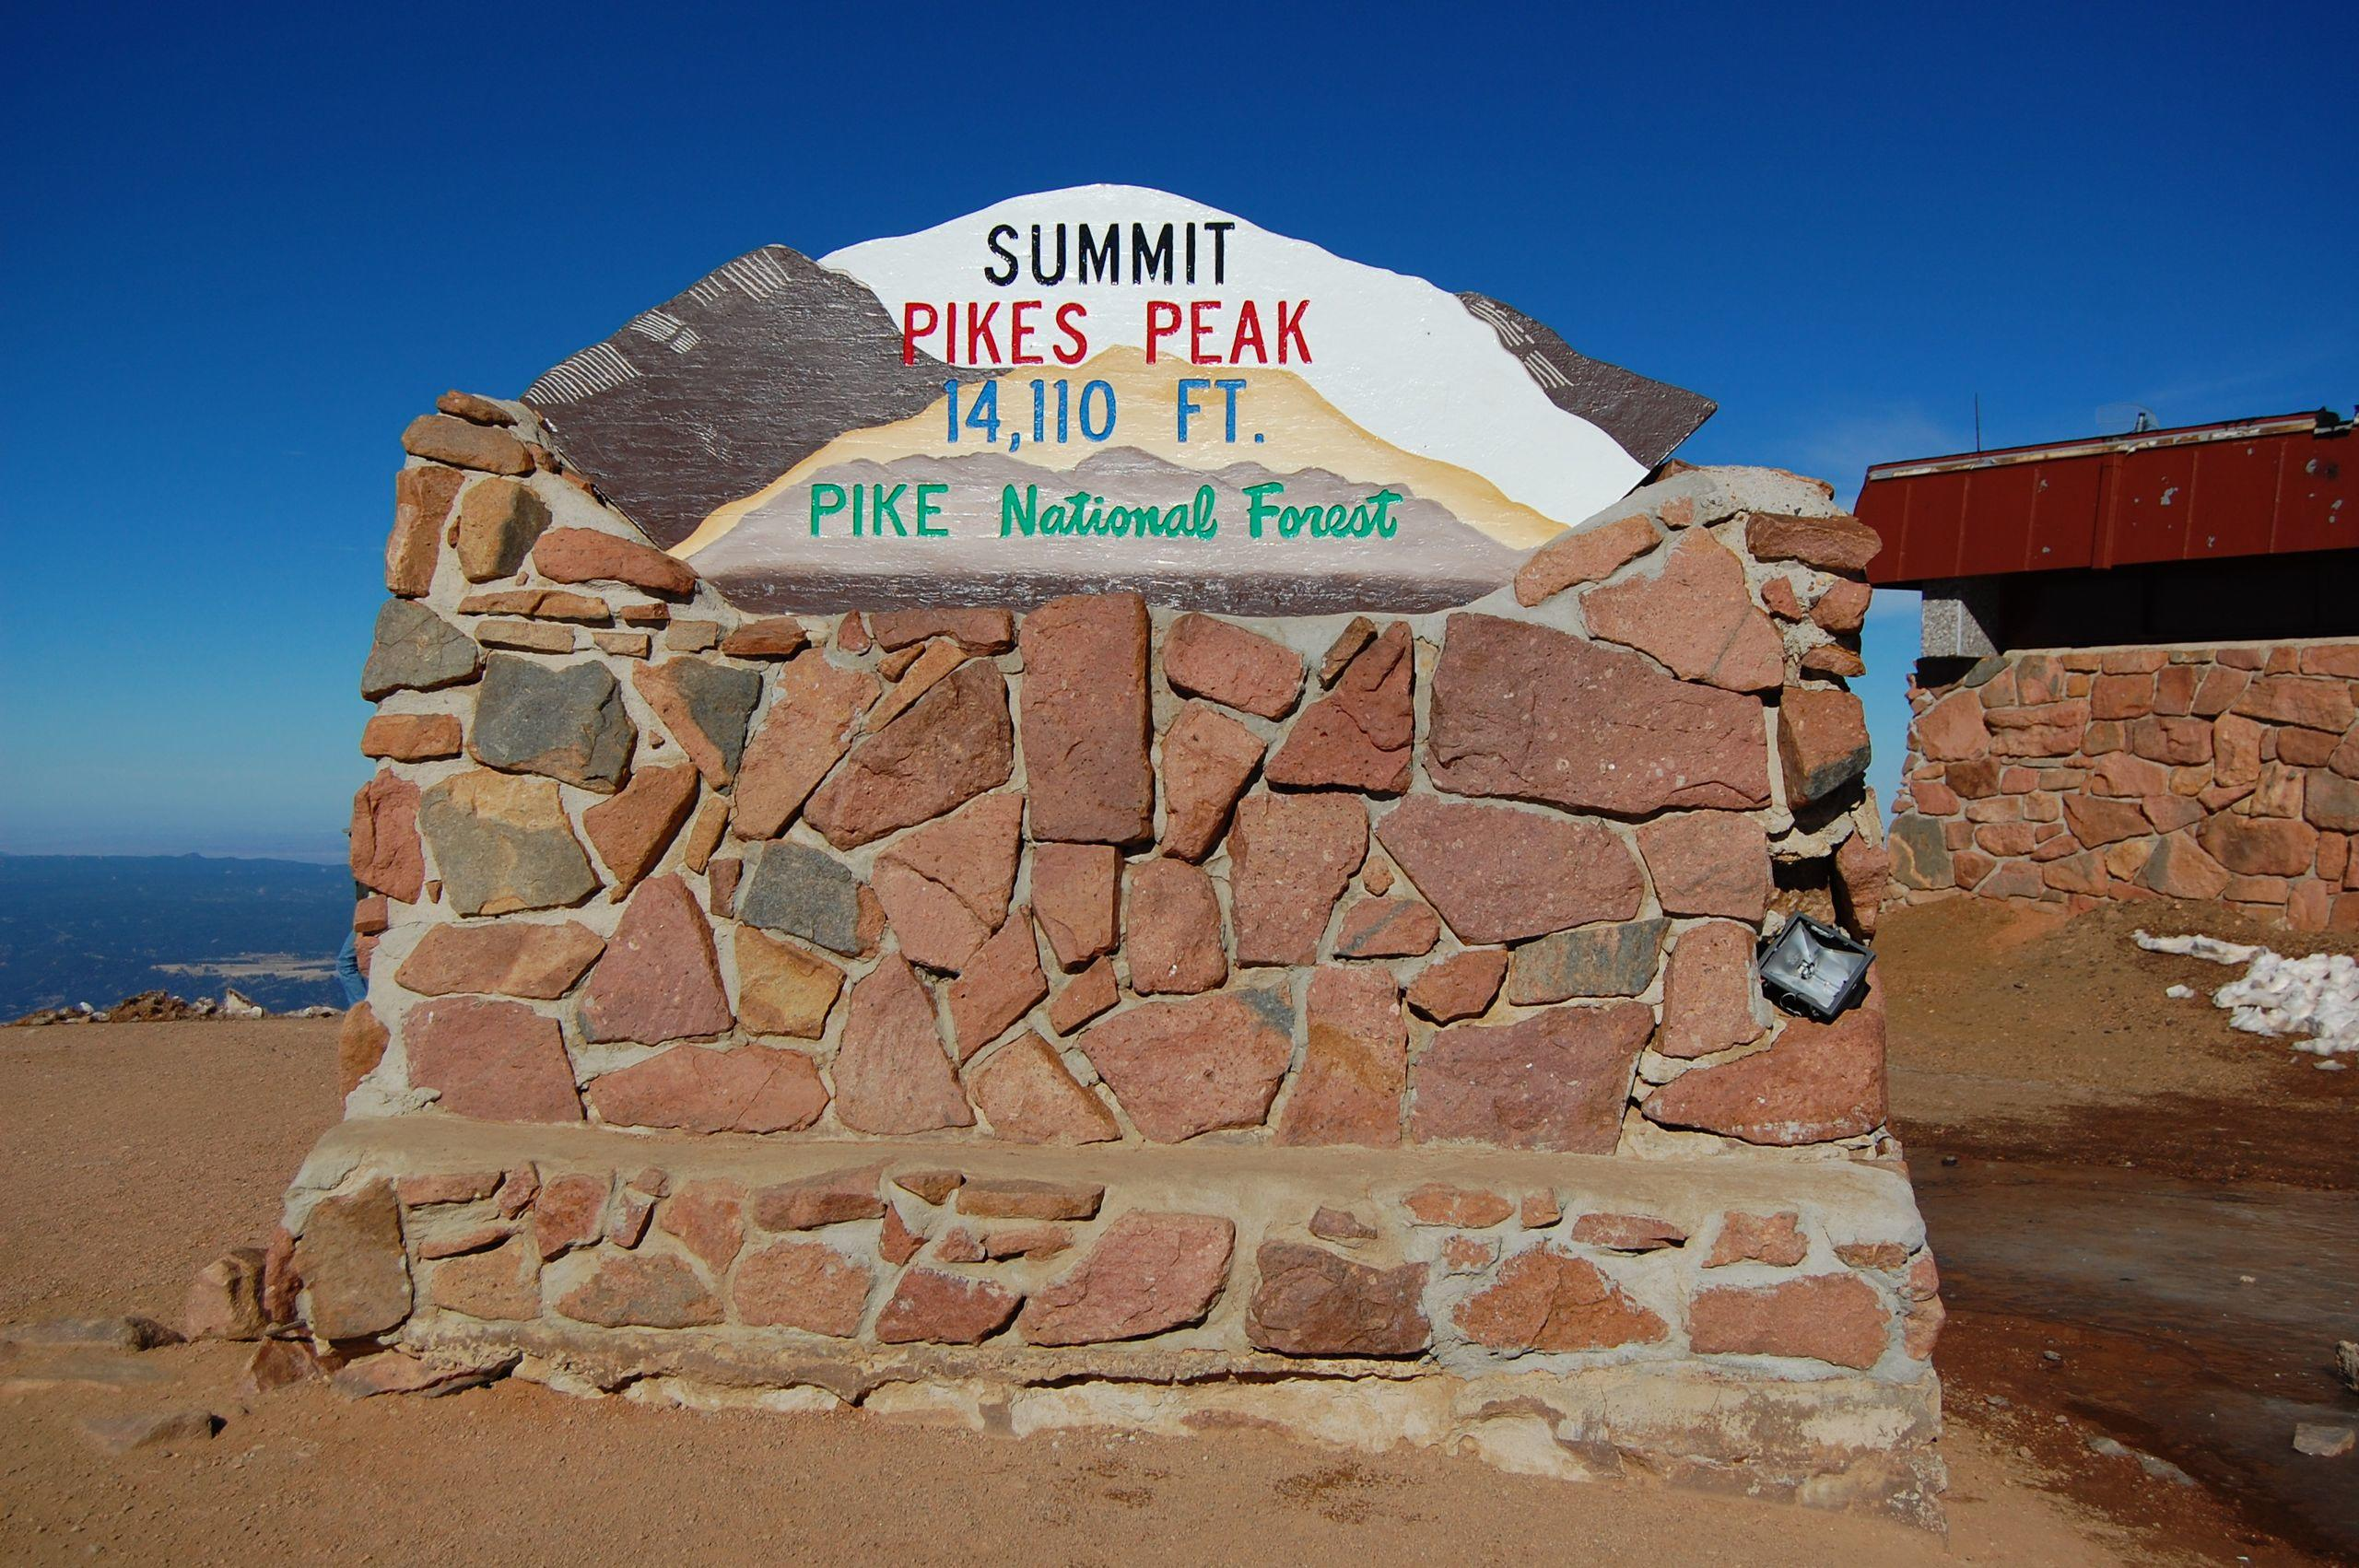 pikes-peak-summit-sign-2012-10-21.jpg